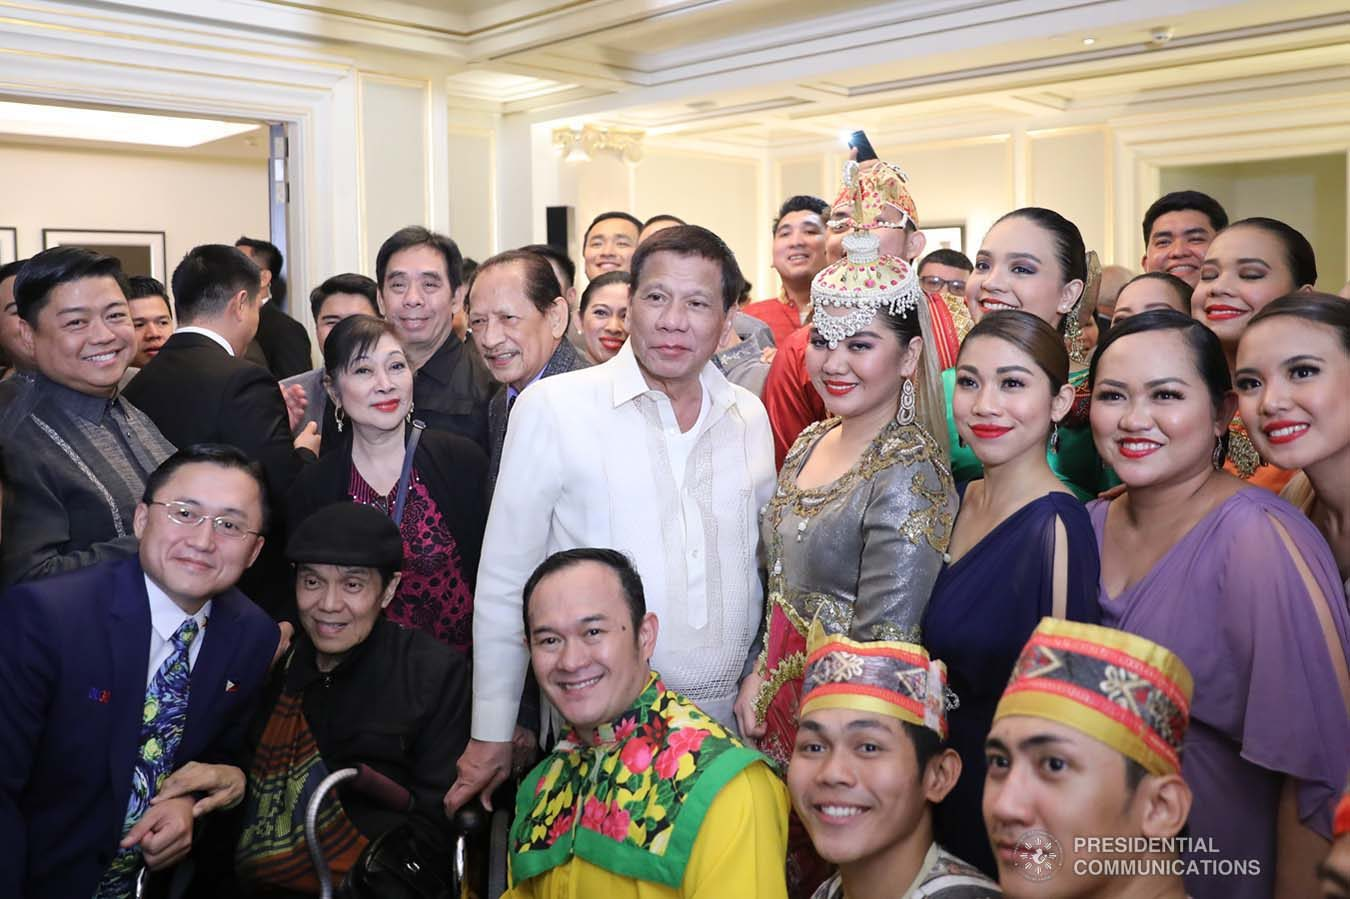 President Rodrigo Roa Duterte poses for posterity with some of the performers during the Philippine Cultural Gala Performance at the Four Seasons Hotel in Moscow, Russian Federation on October 4, 2019. ALFRED FRIAS/PRESIDENTIAL PHOTO